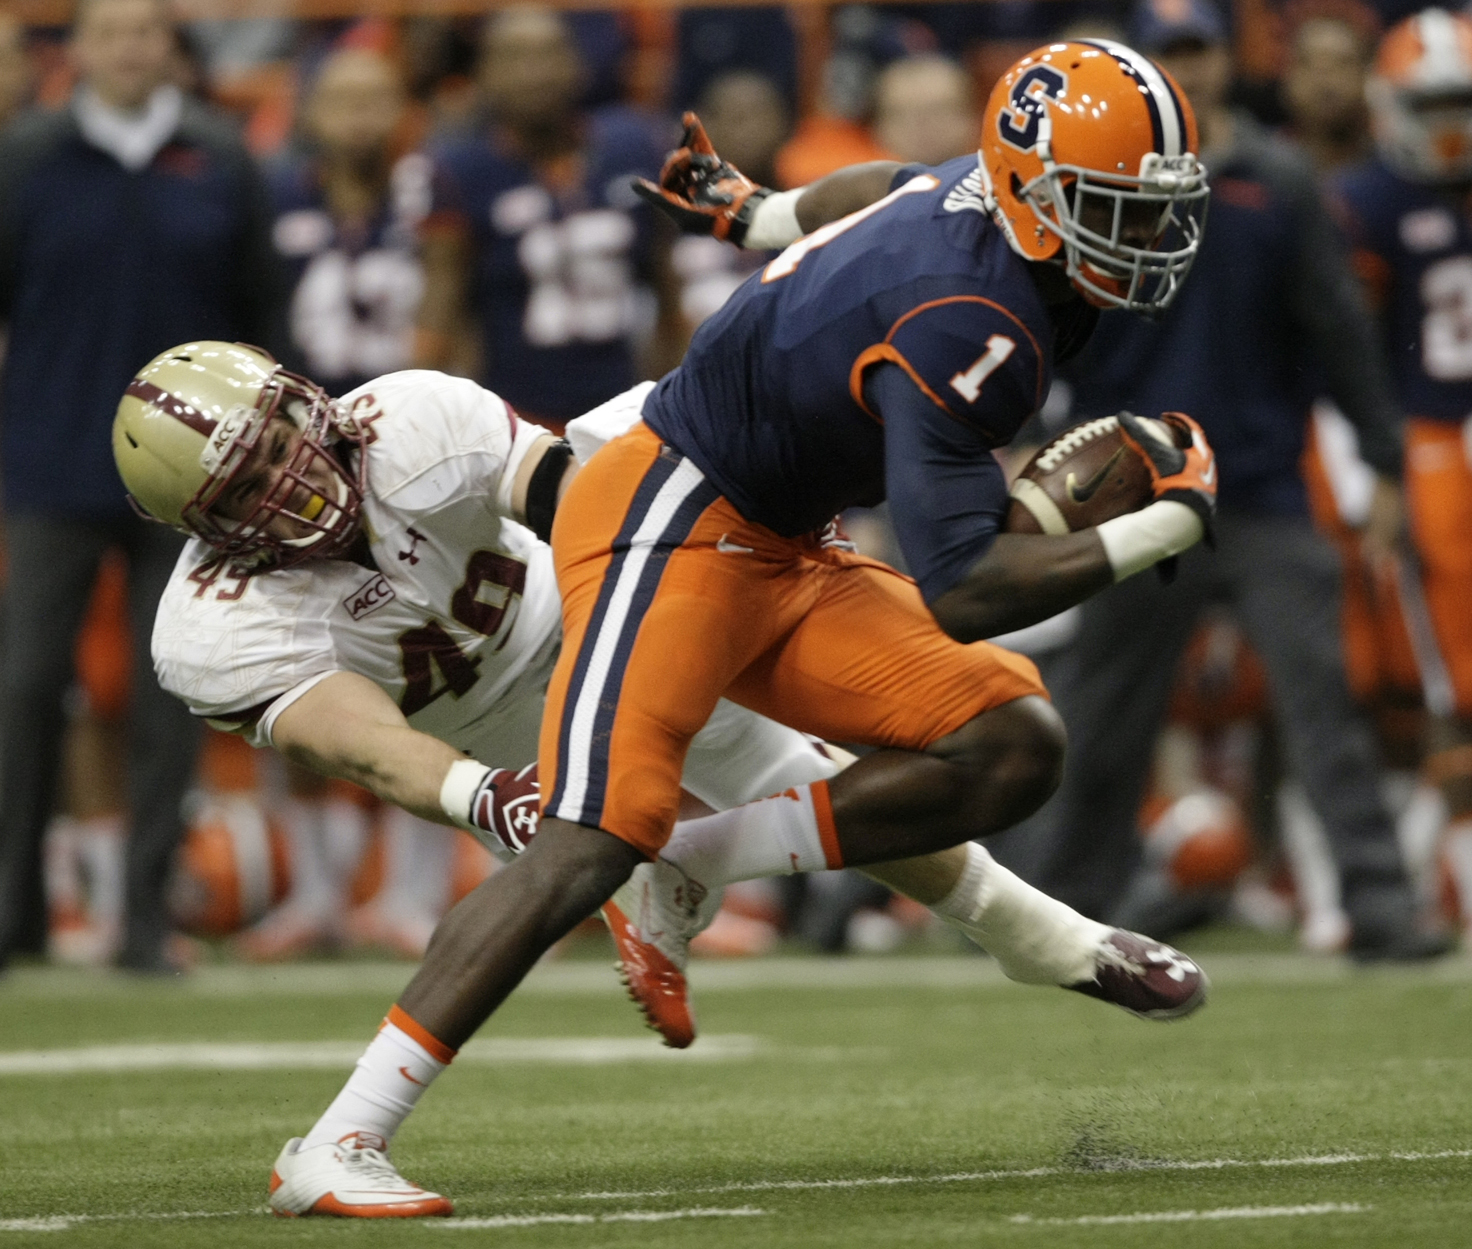 Syracuse's Ashton Broyld, right, runs past Boston College's Steele Divitto, left, in the first quarter of an NCAA college football game in Syracuse, N.Y., Saturday, Nov. 30, 2013. (AP Photo/Nick Lisi)